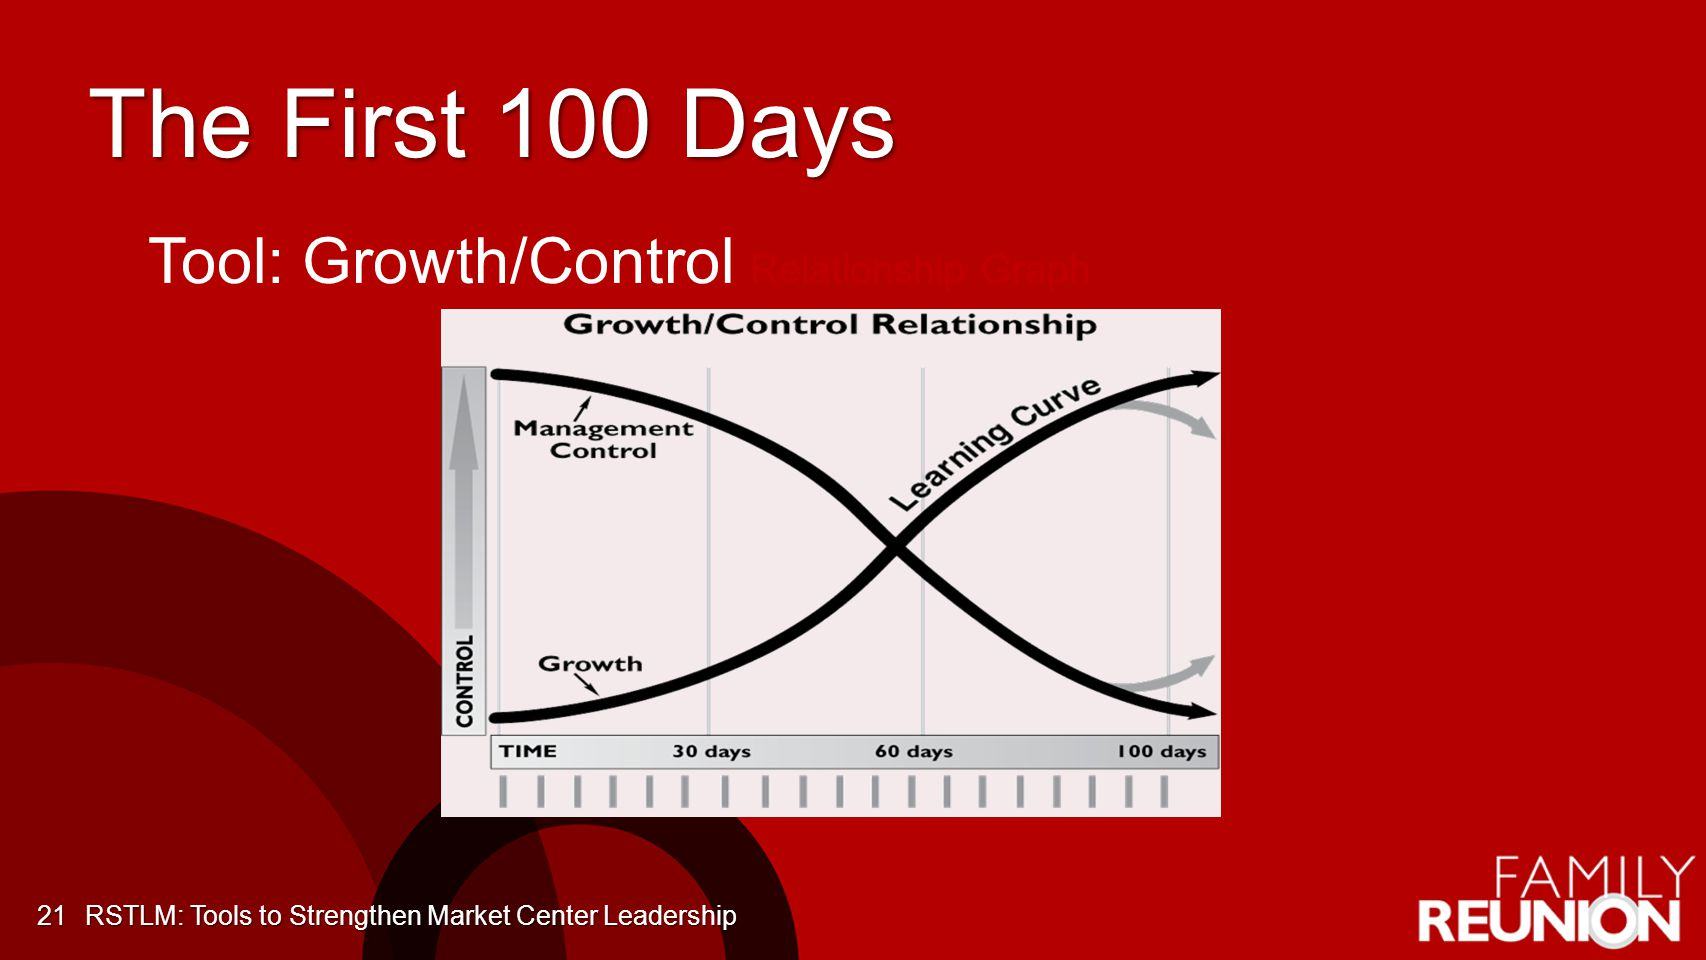 The First 100 Days Tool: Growth/Control Relationship Graph